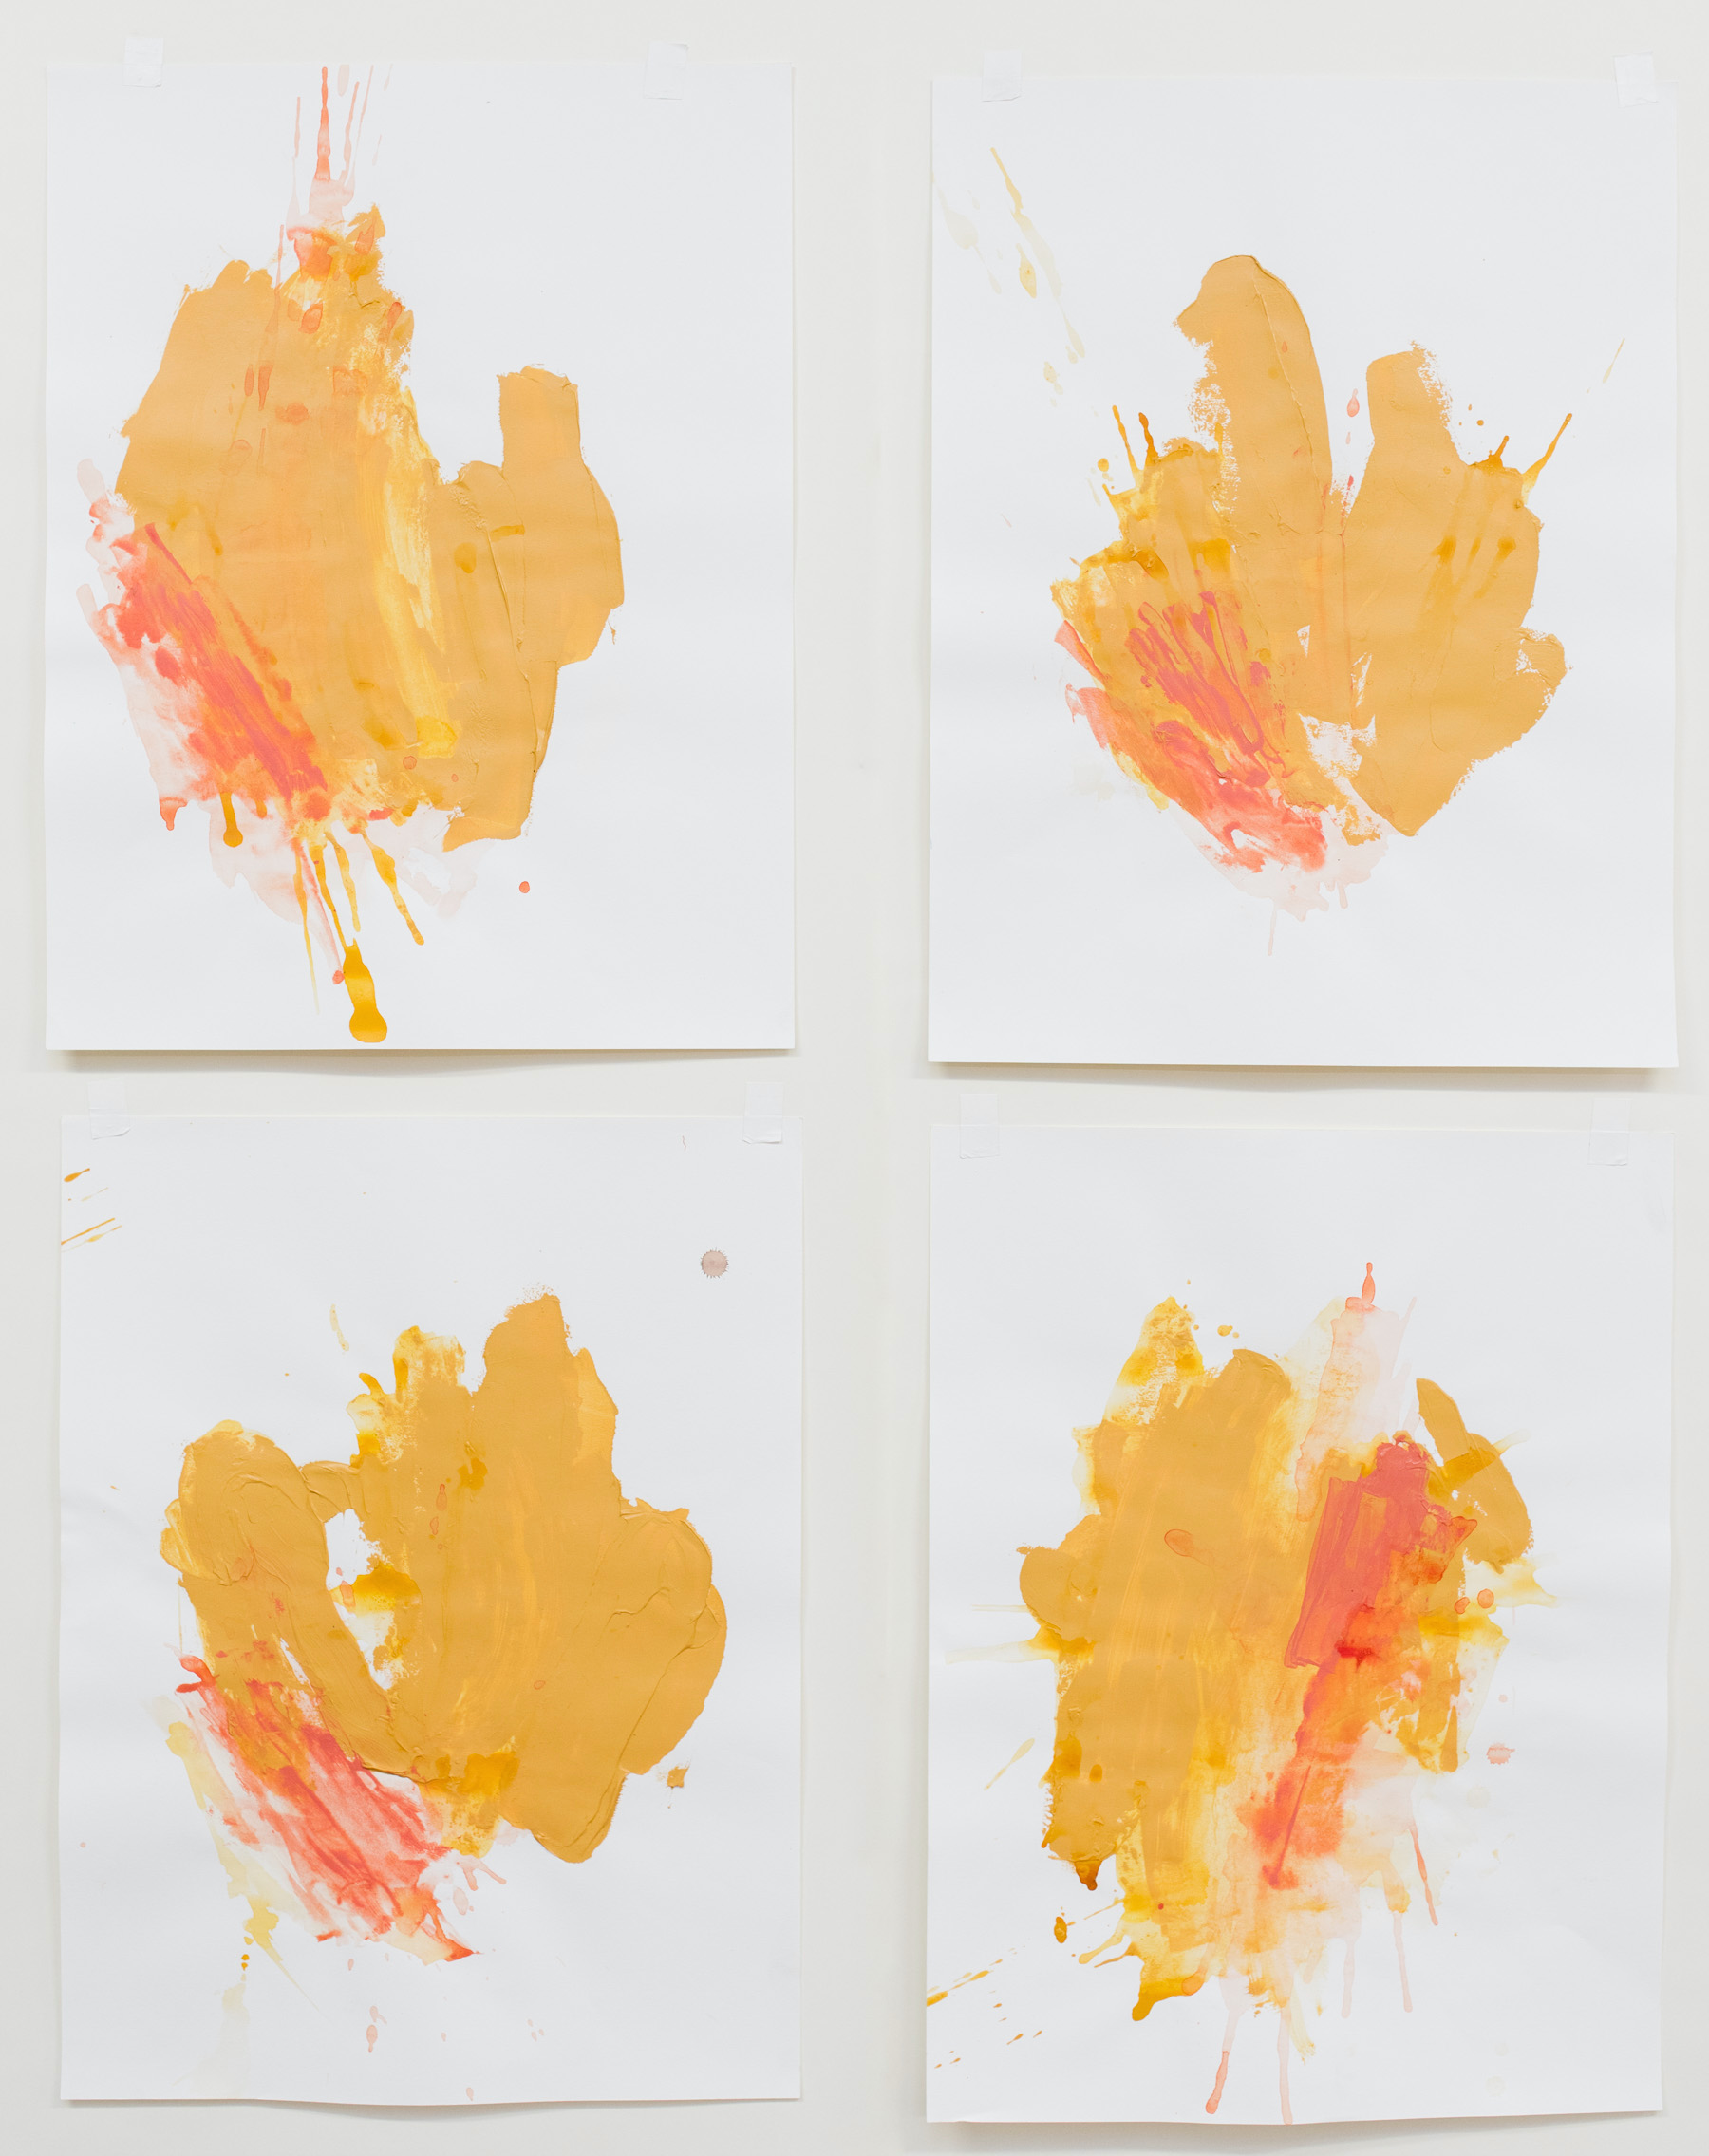 """Buttercup Test #1-4 , 18""""x24"""" each, acrylic on paper, 2018, available"""